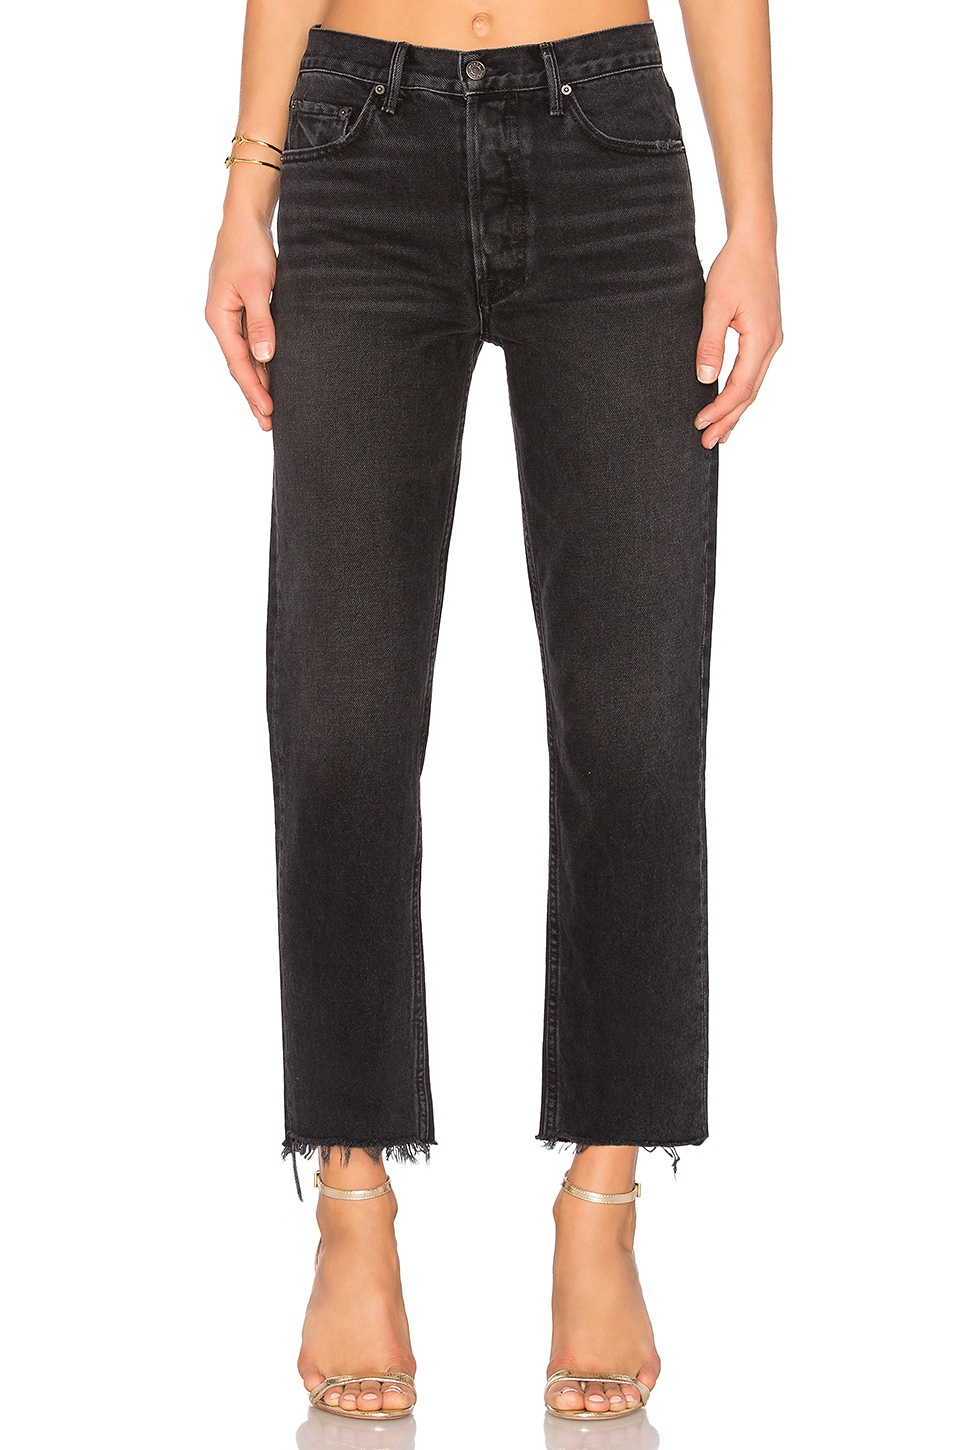 GRLFRND Helena High-Rise Straight Crop Jean in Proud Mary